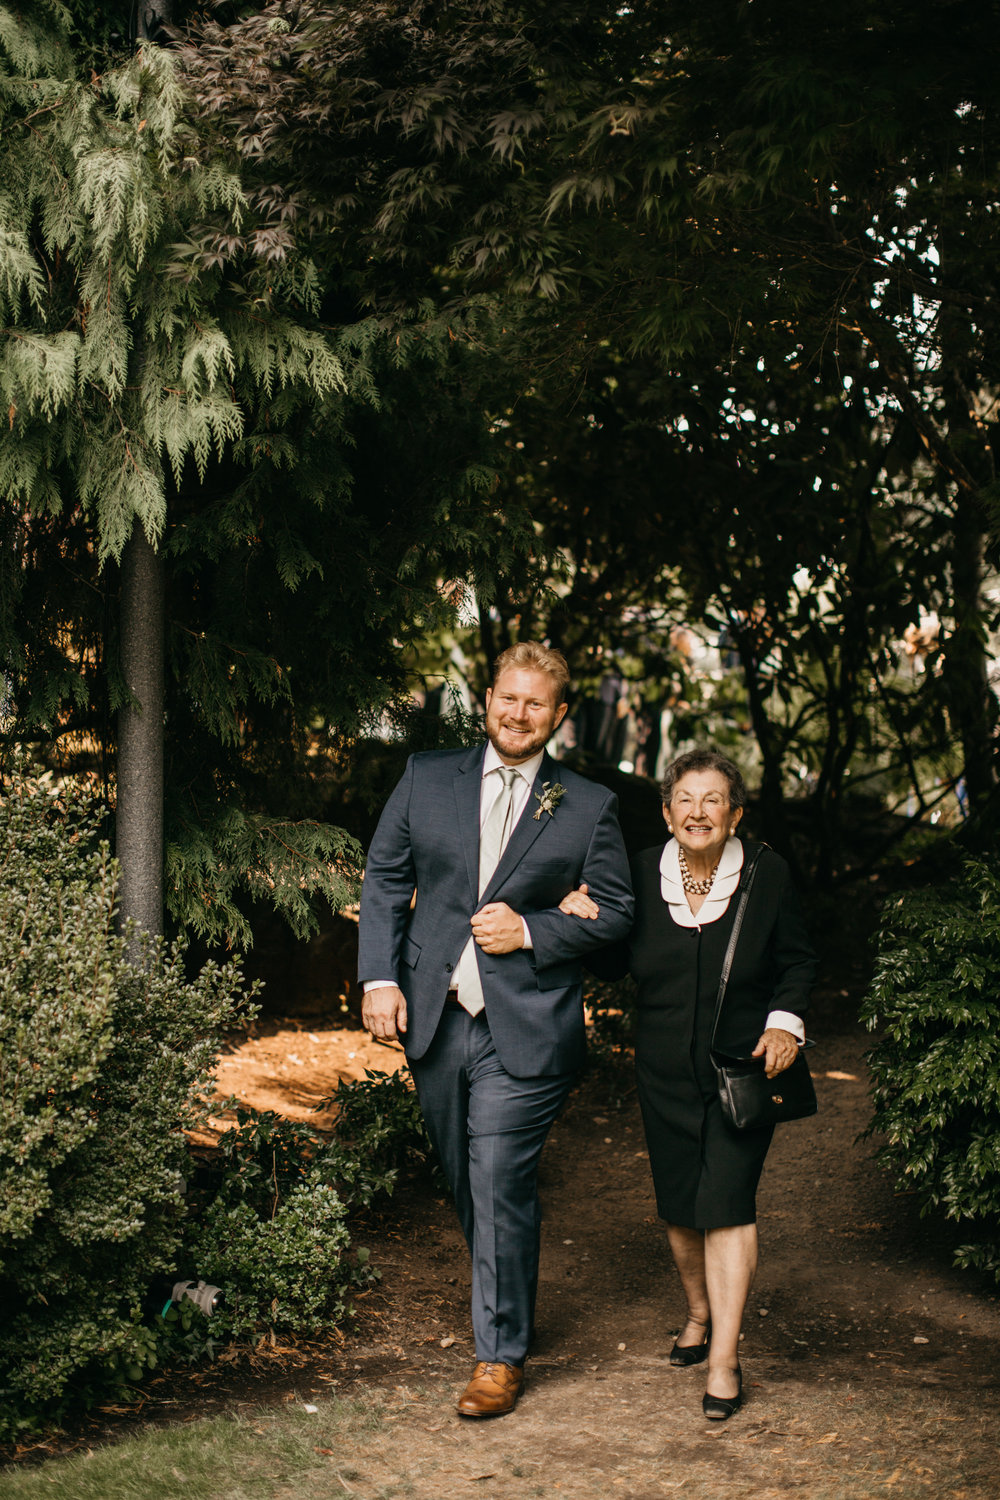 Max&SamPhoto_Seattle Wedding Photographer_Bellevue Robinswood House_064.jpg